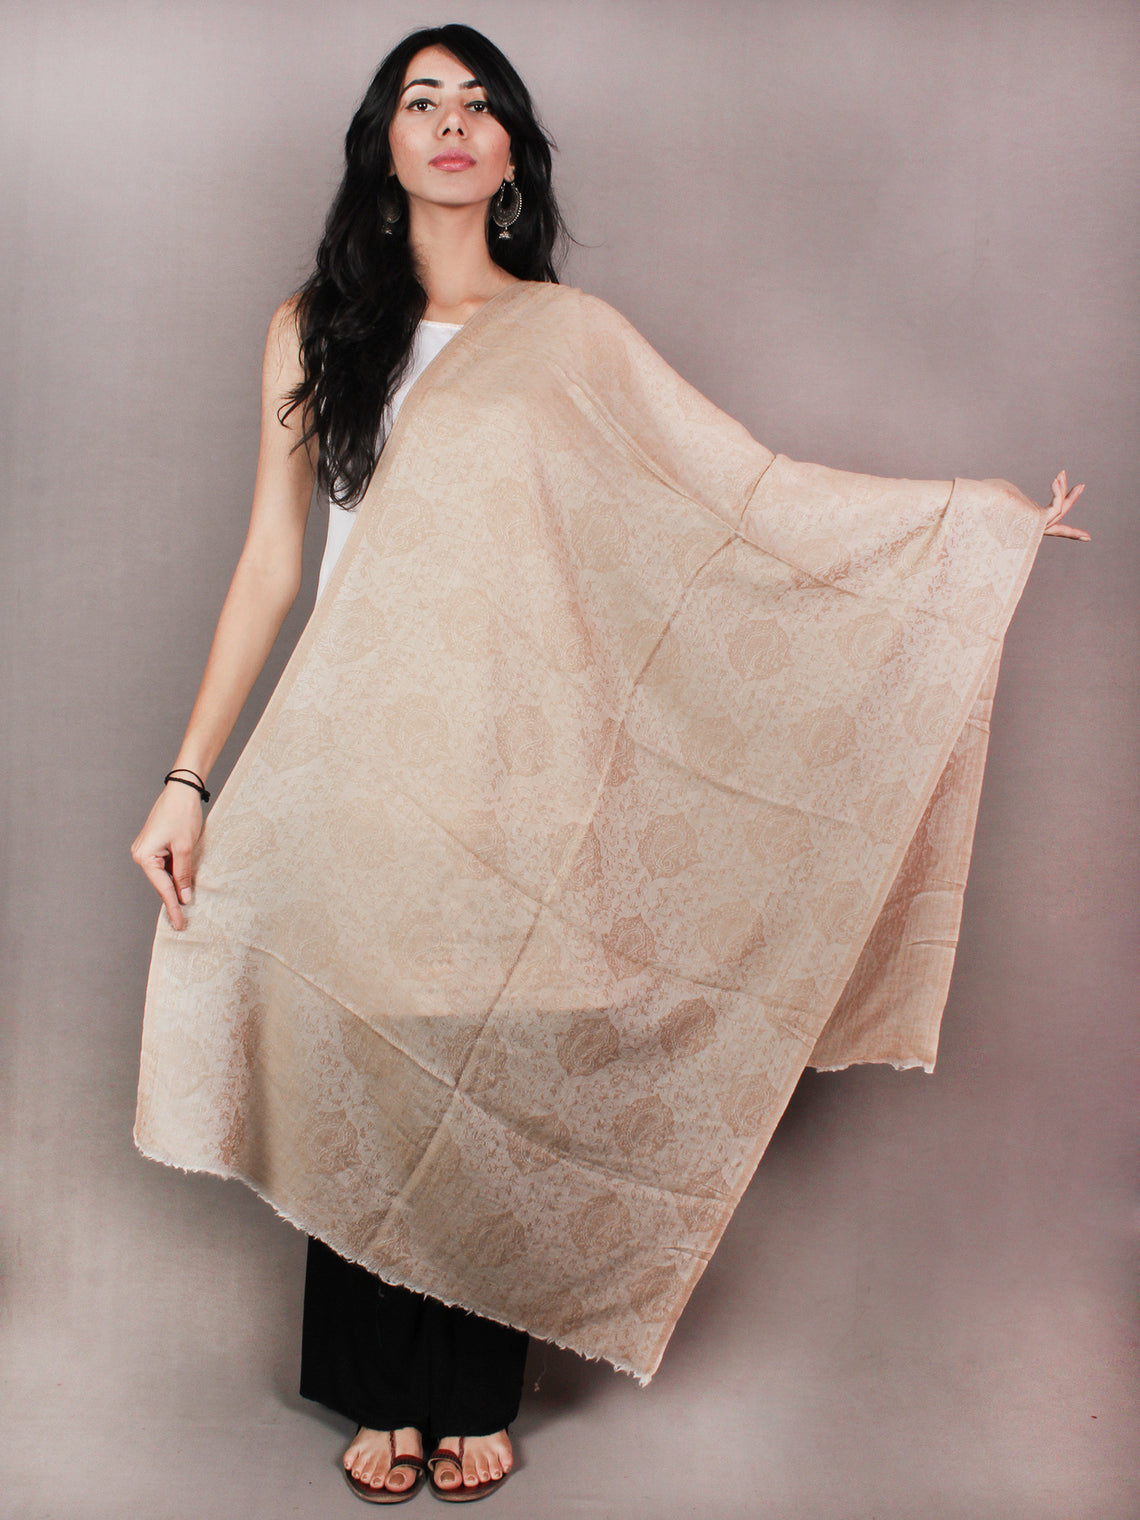 Sandy Brown Pure Wool Self Design Cashmere Stole from Kashmir - S6317105